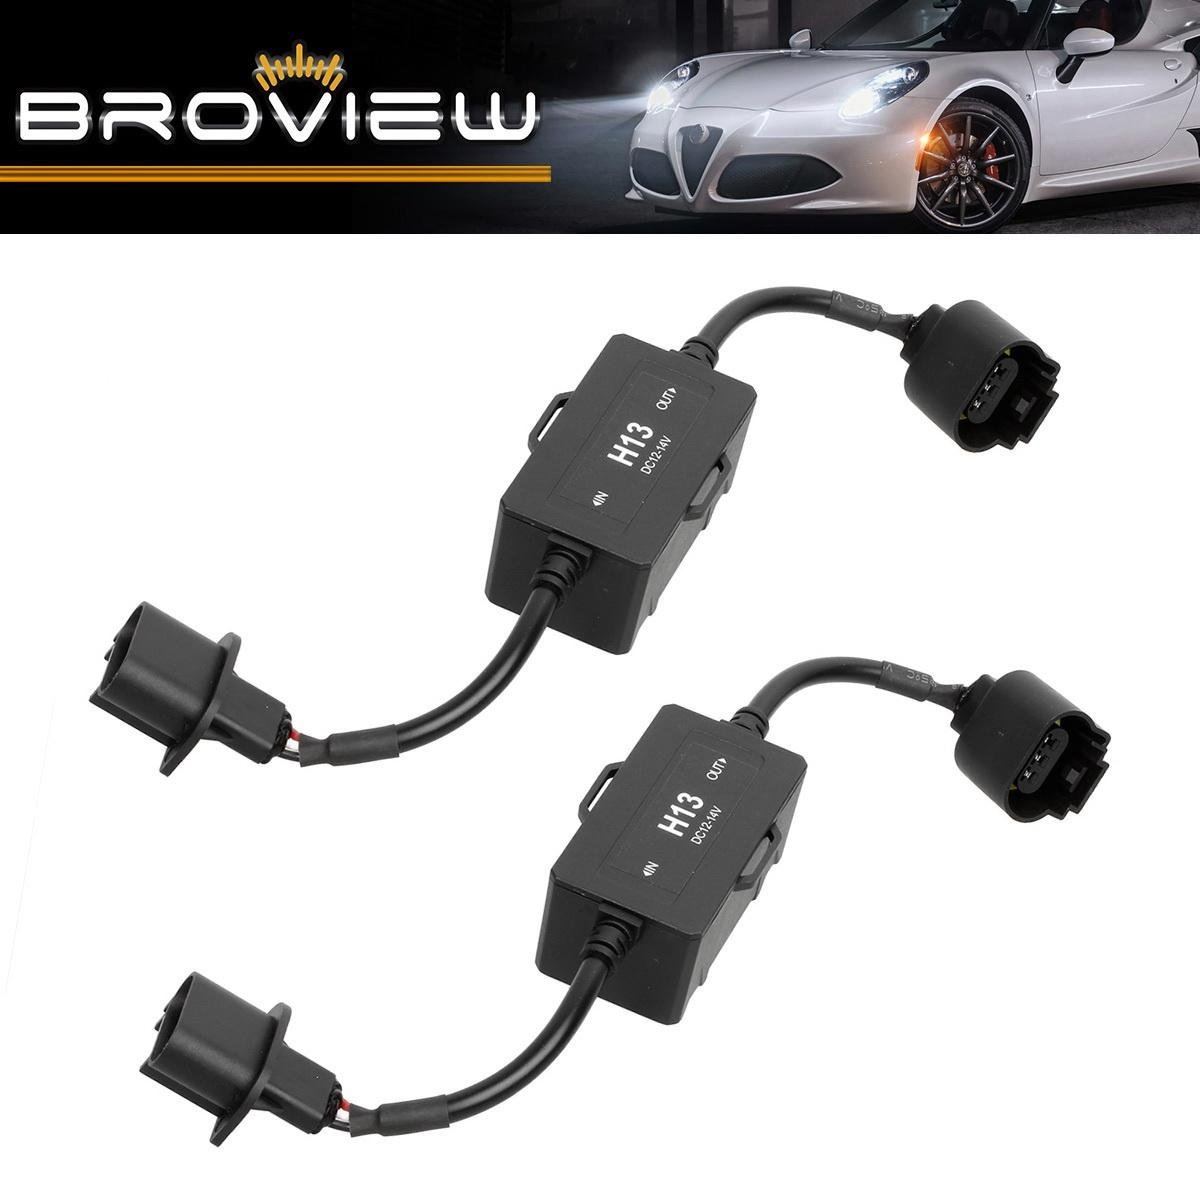 BROVIEW Canbus Series -For H13 9008 LED Headlights Conversion Kit Anti Flickering -Wire Haress Load Resistor Decorder Canbus Error Free Computer Warning Canceller -1 Yr Warranty -(2pcs/1 Pair)